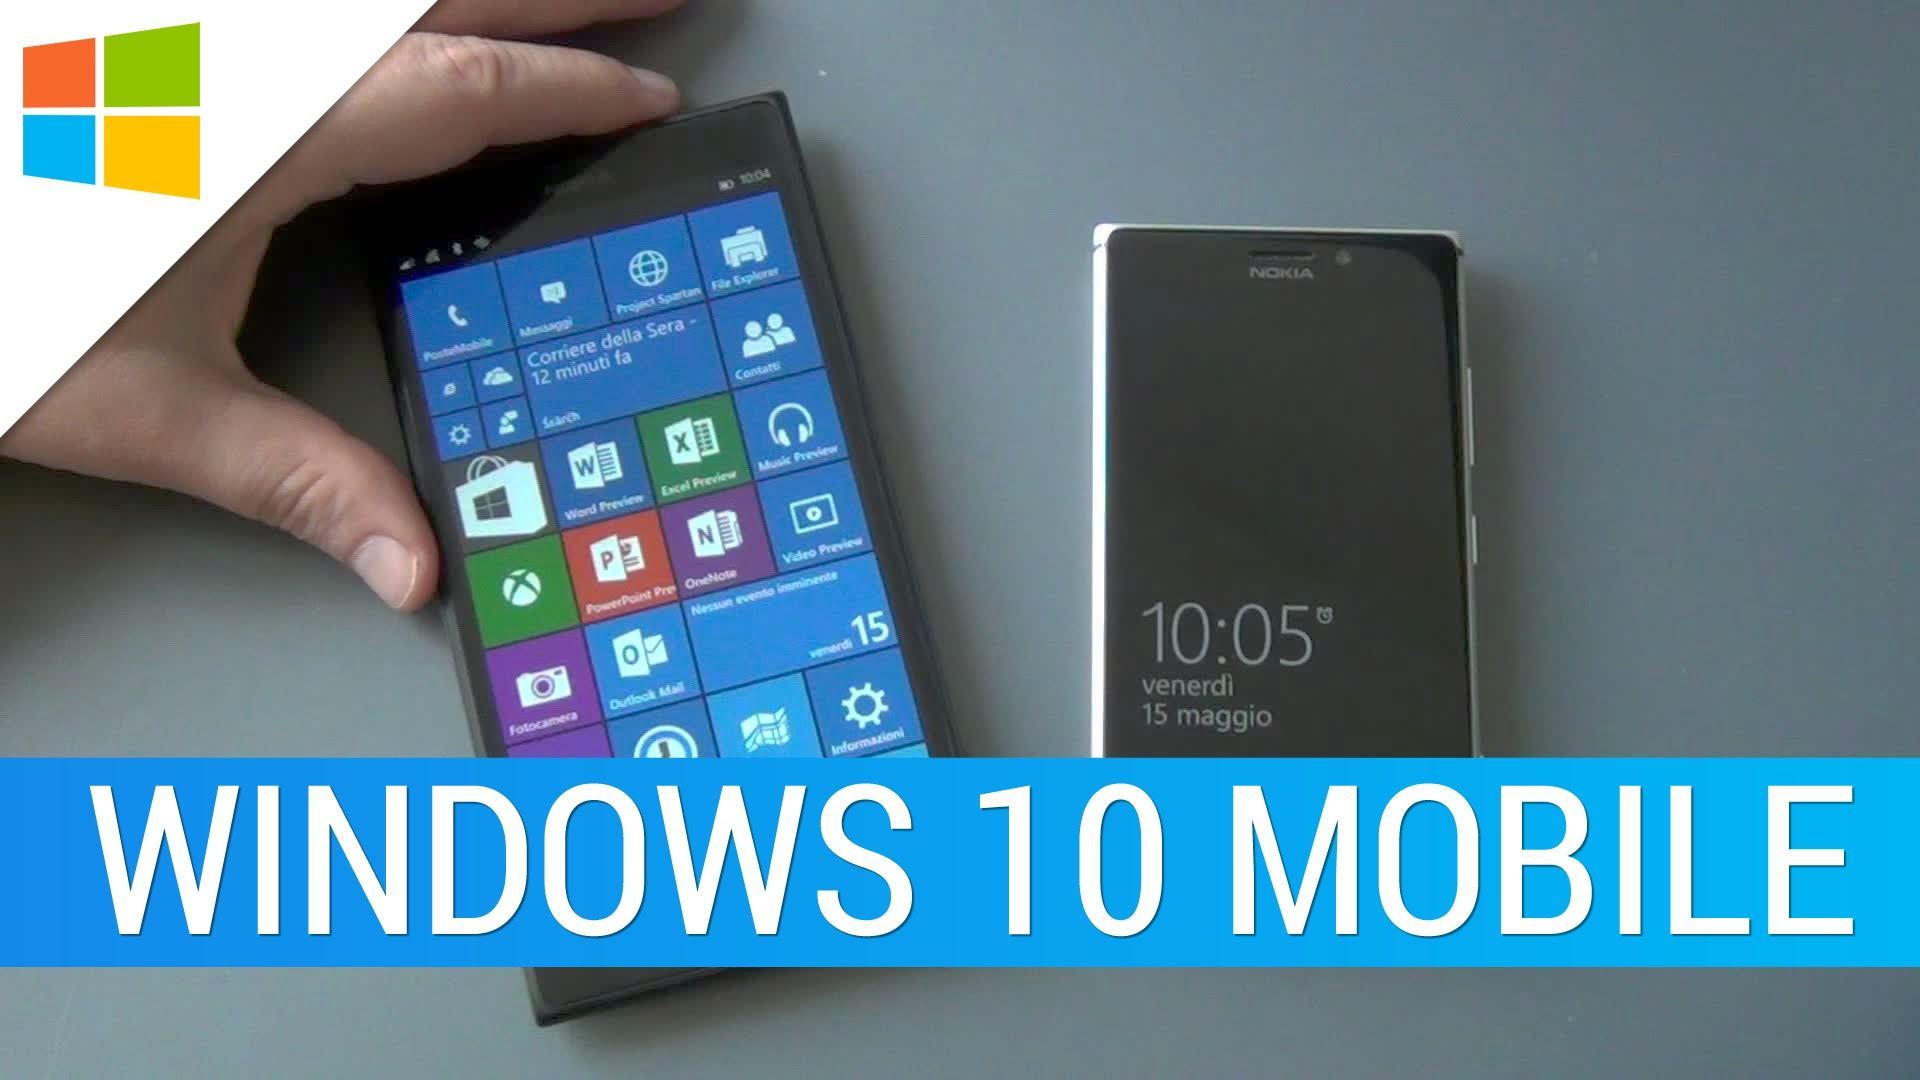 Windows 10 Mobile finalmente será distribuido oficialmente